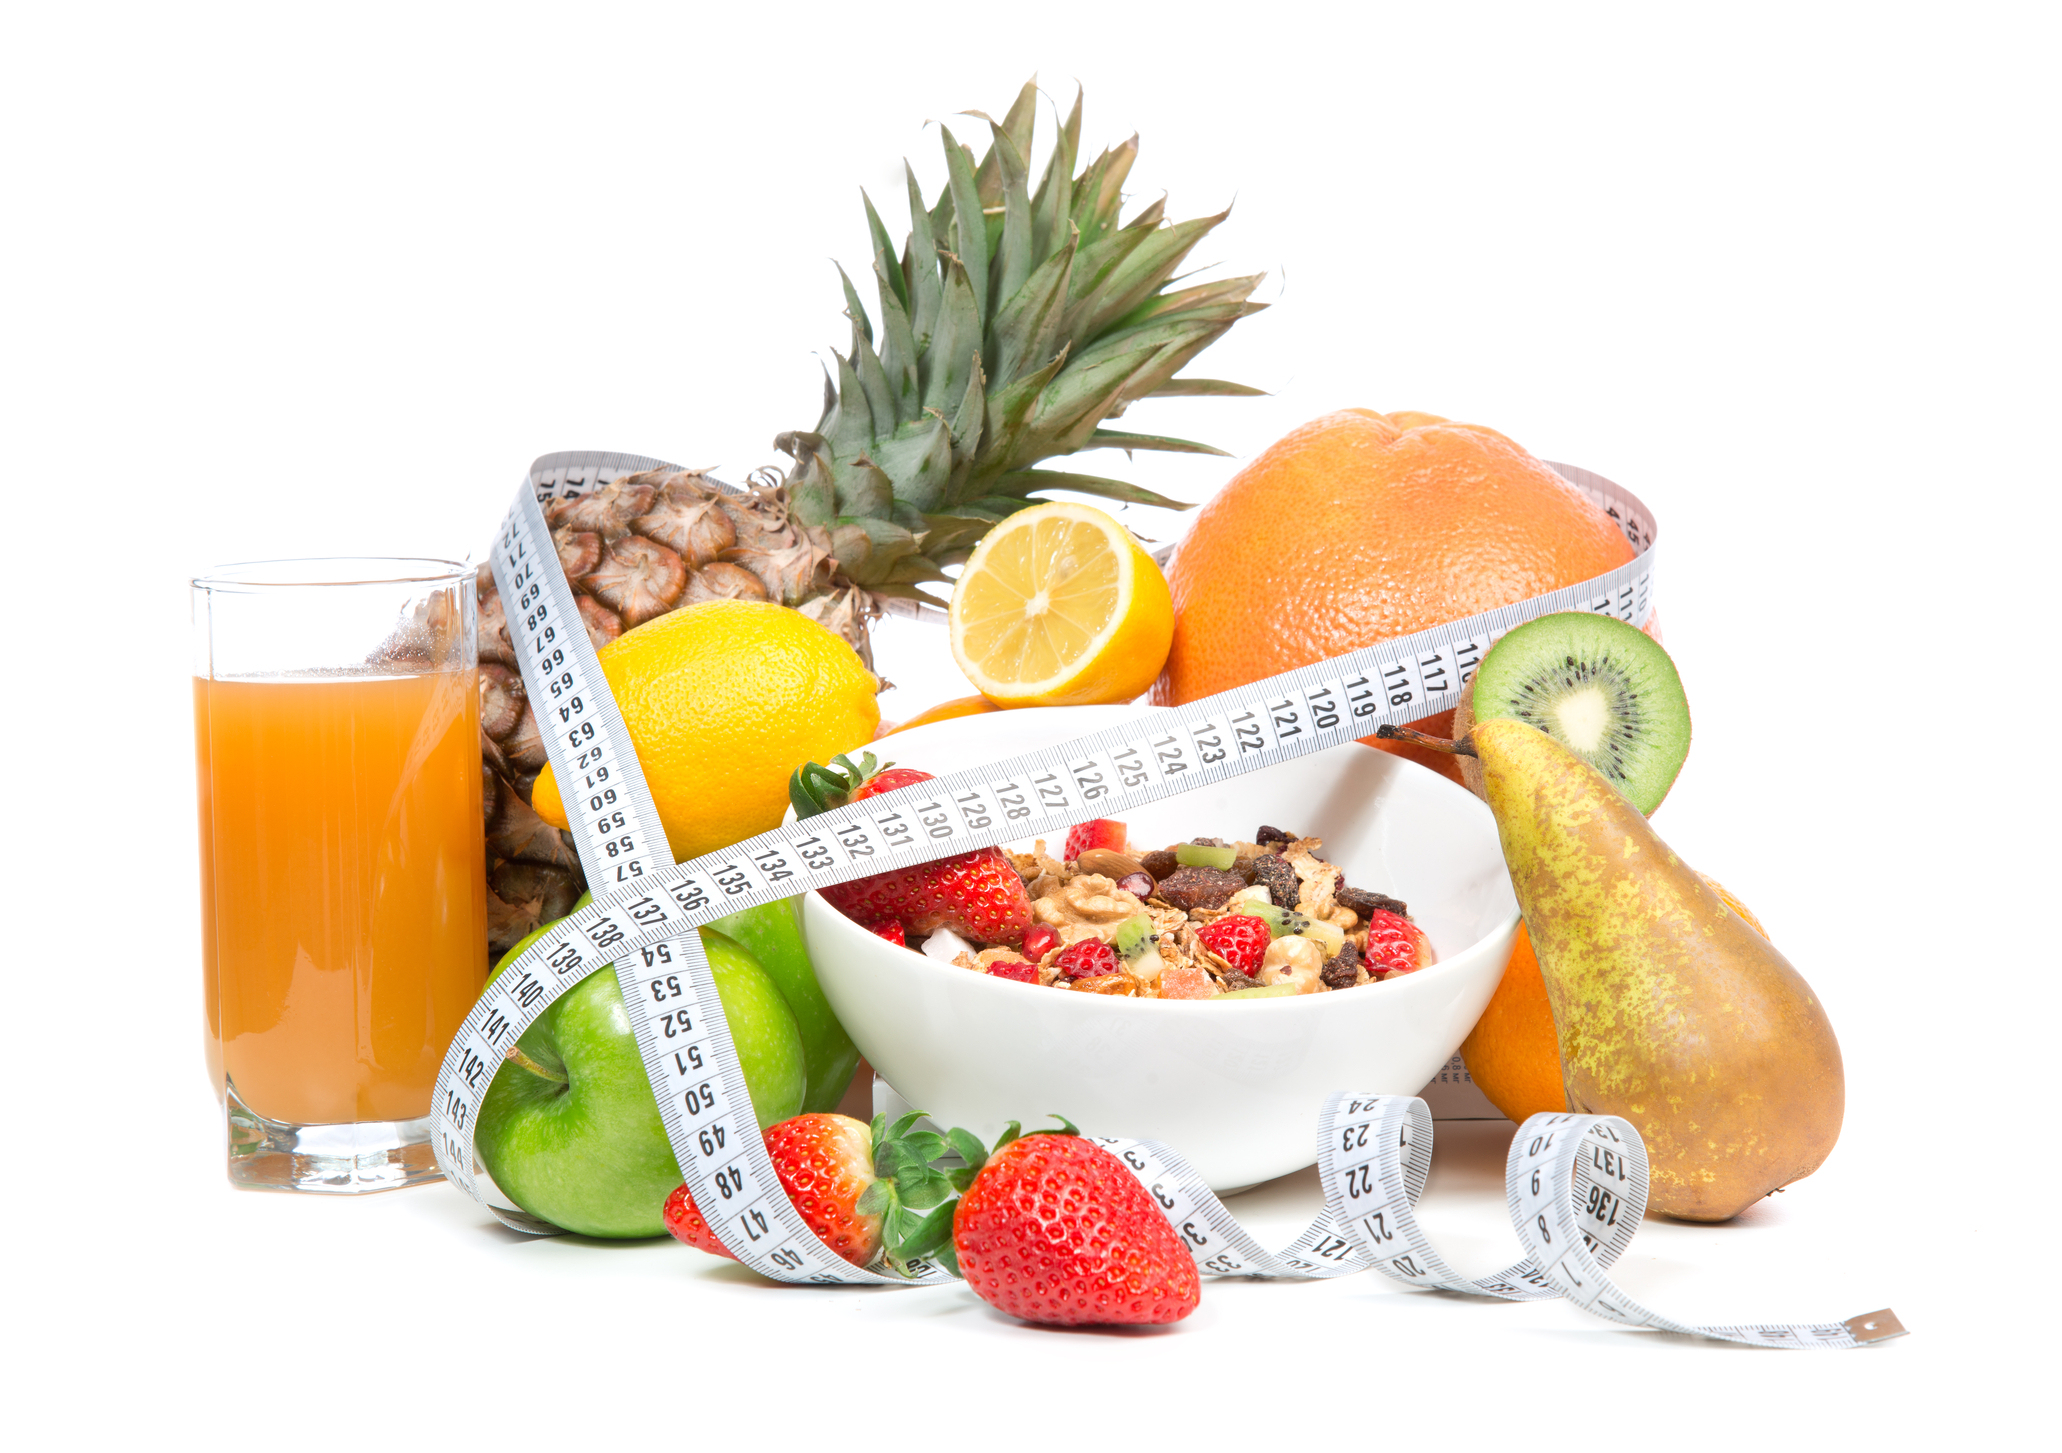 Male 7lb weight loss diet Conferences are attended